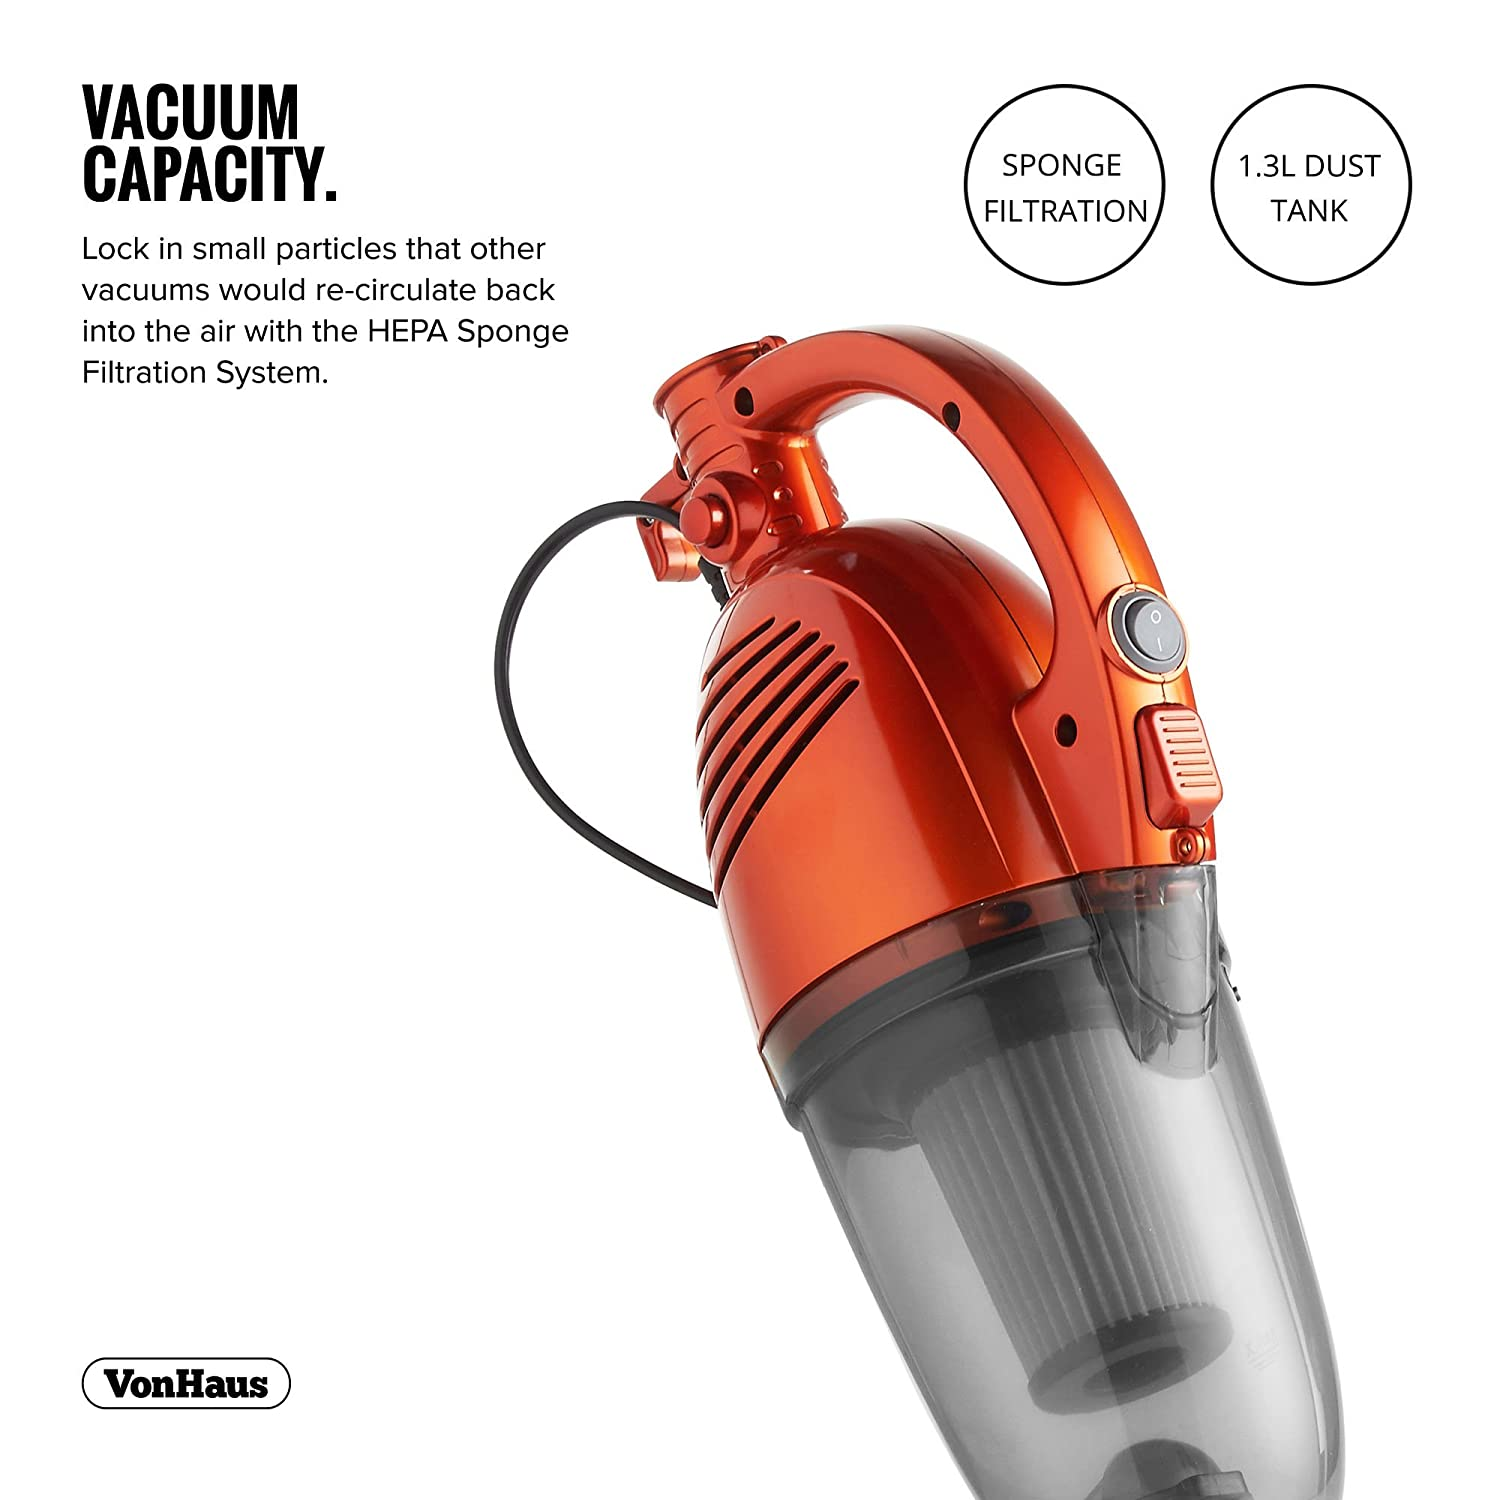 VonHaus 600W 2 In 1 Corded Upright Stick Handheld Vacuum Cleaner With HEPA Filtration